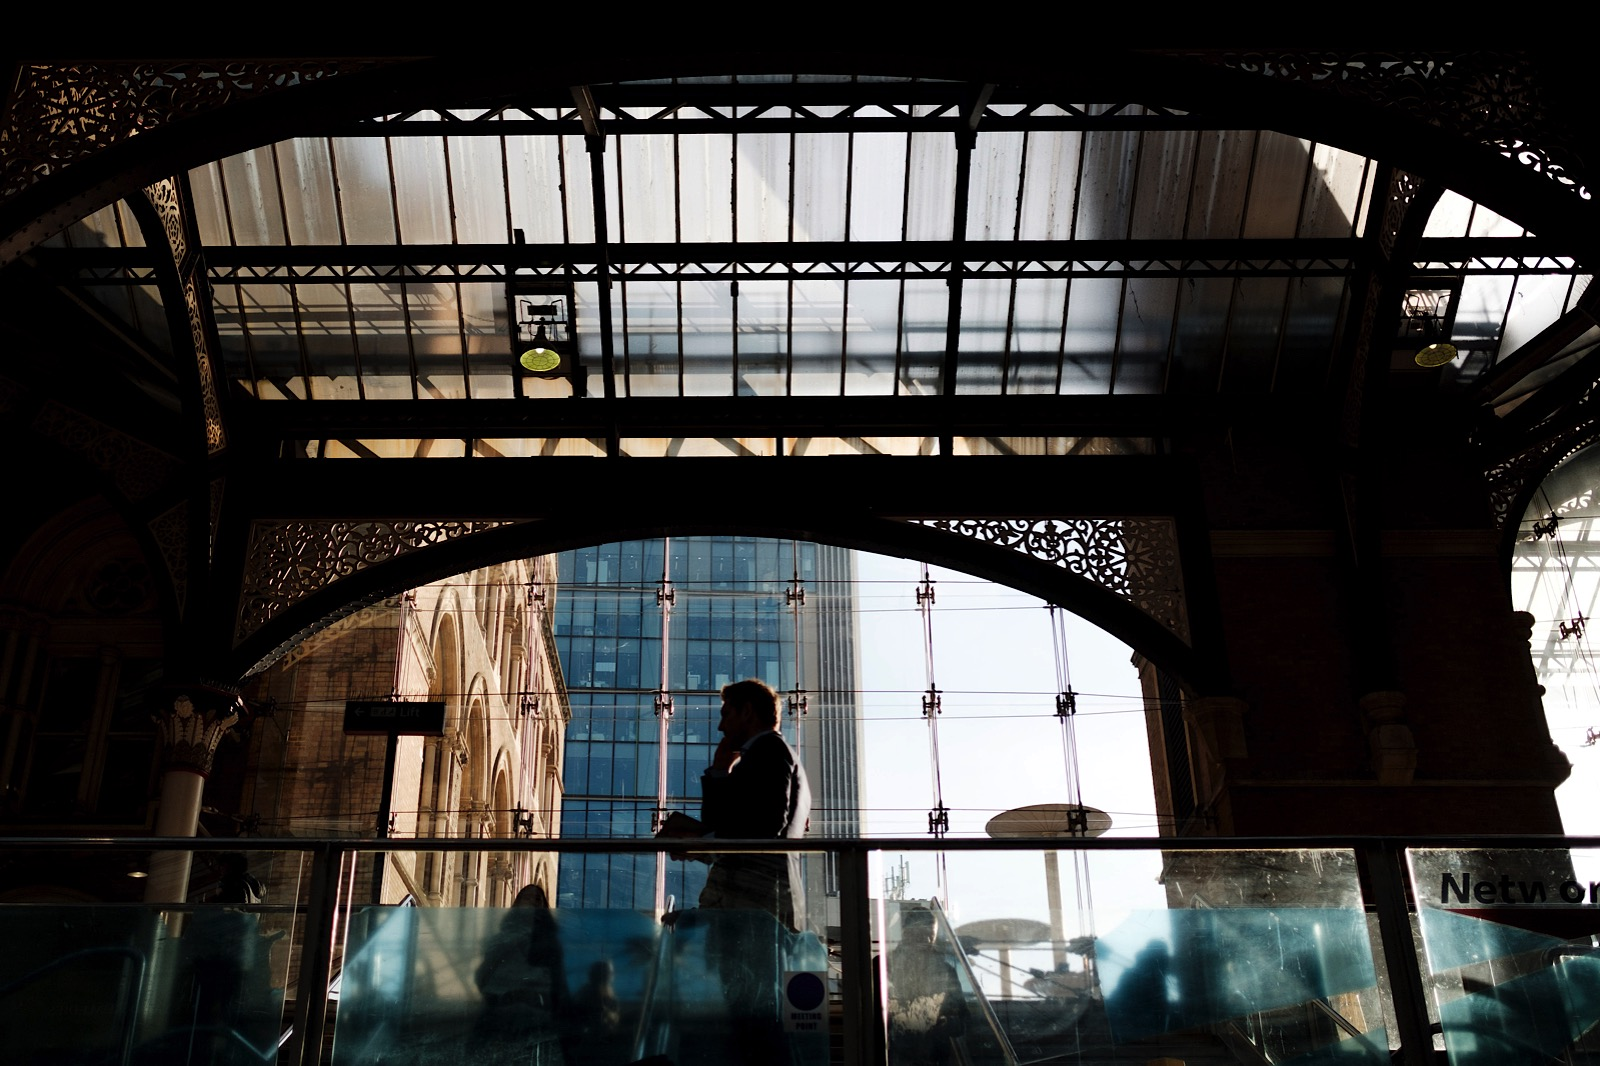 Street photography at Liverpool Street Stations